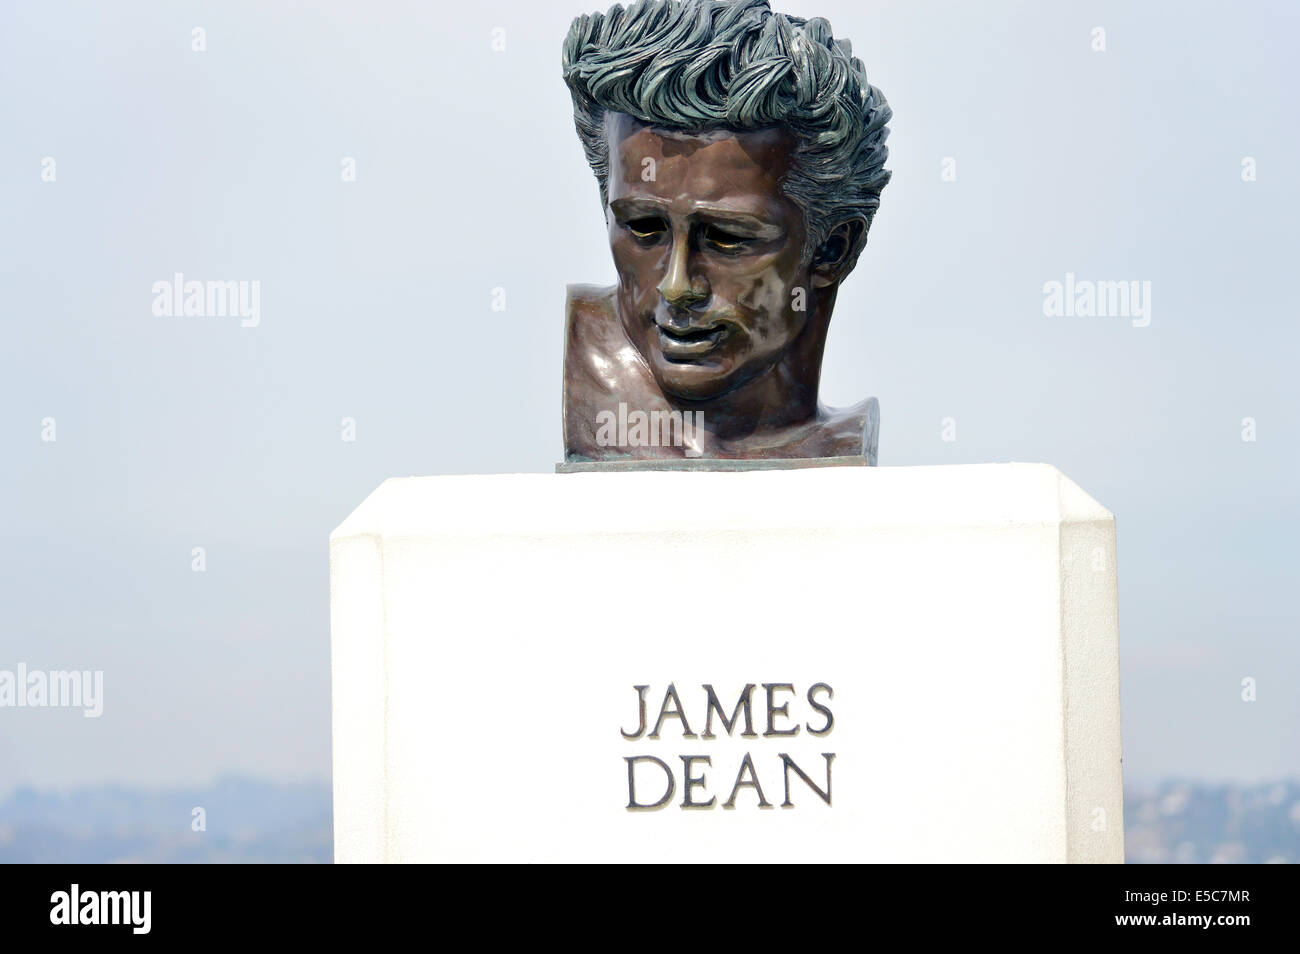 The James Dean 'Rebel Without a Cause' film statue outside the Observatory in Griffith Park, Los Angeles, - Stock Image